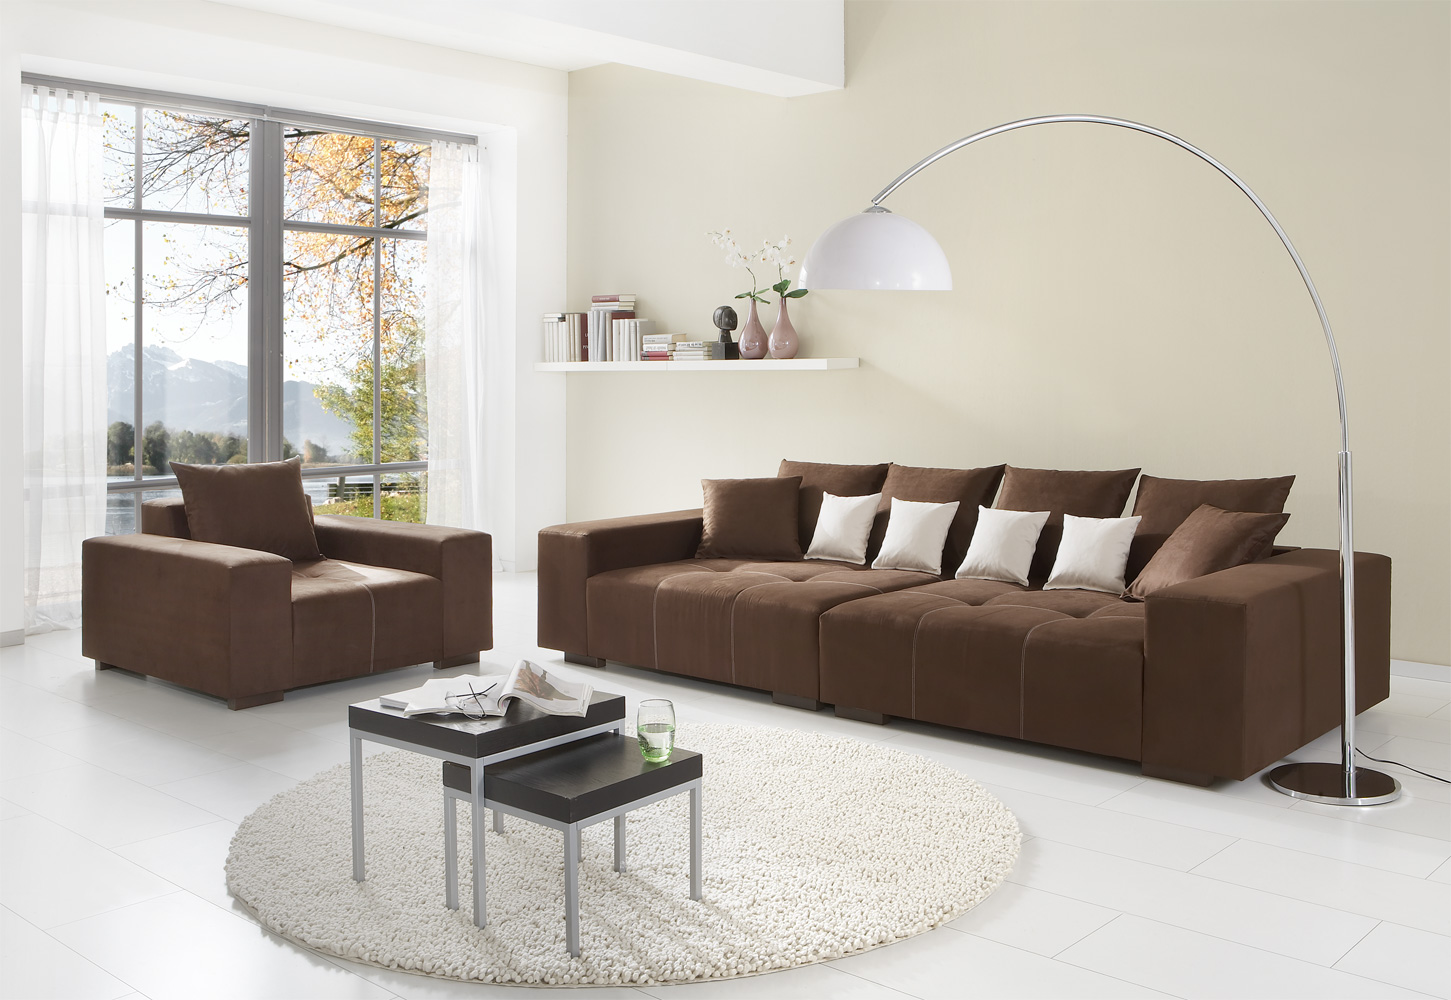 Gorgeous Interior Ideas With Big Sofas : Beautiful Brown Color Modern Minimalist Style Big Sofas